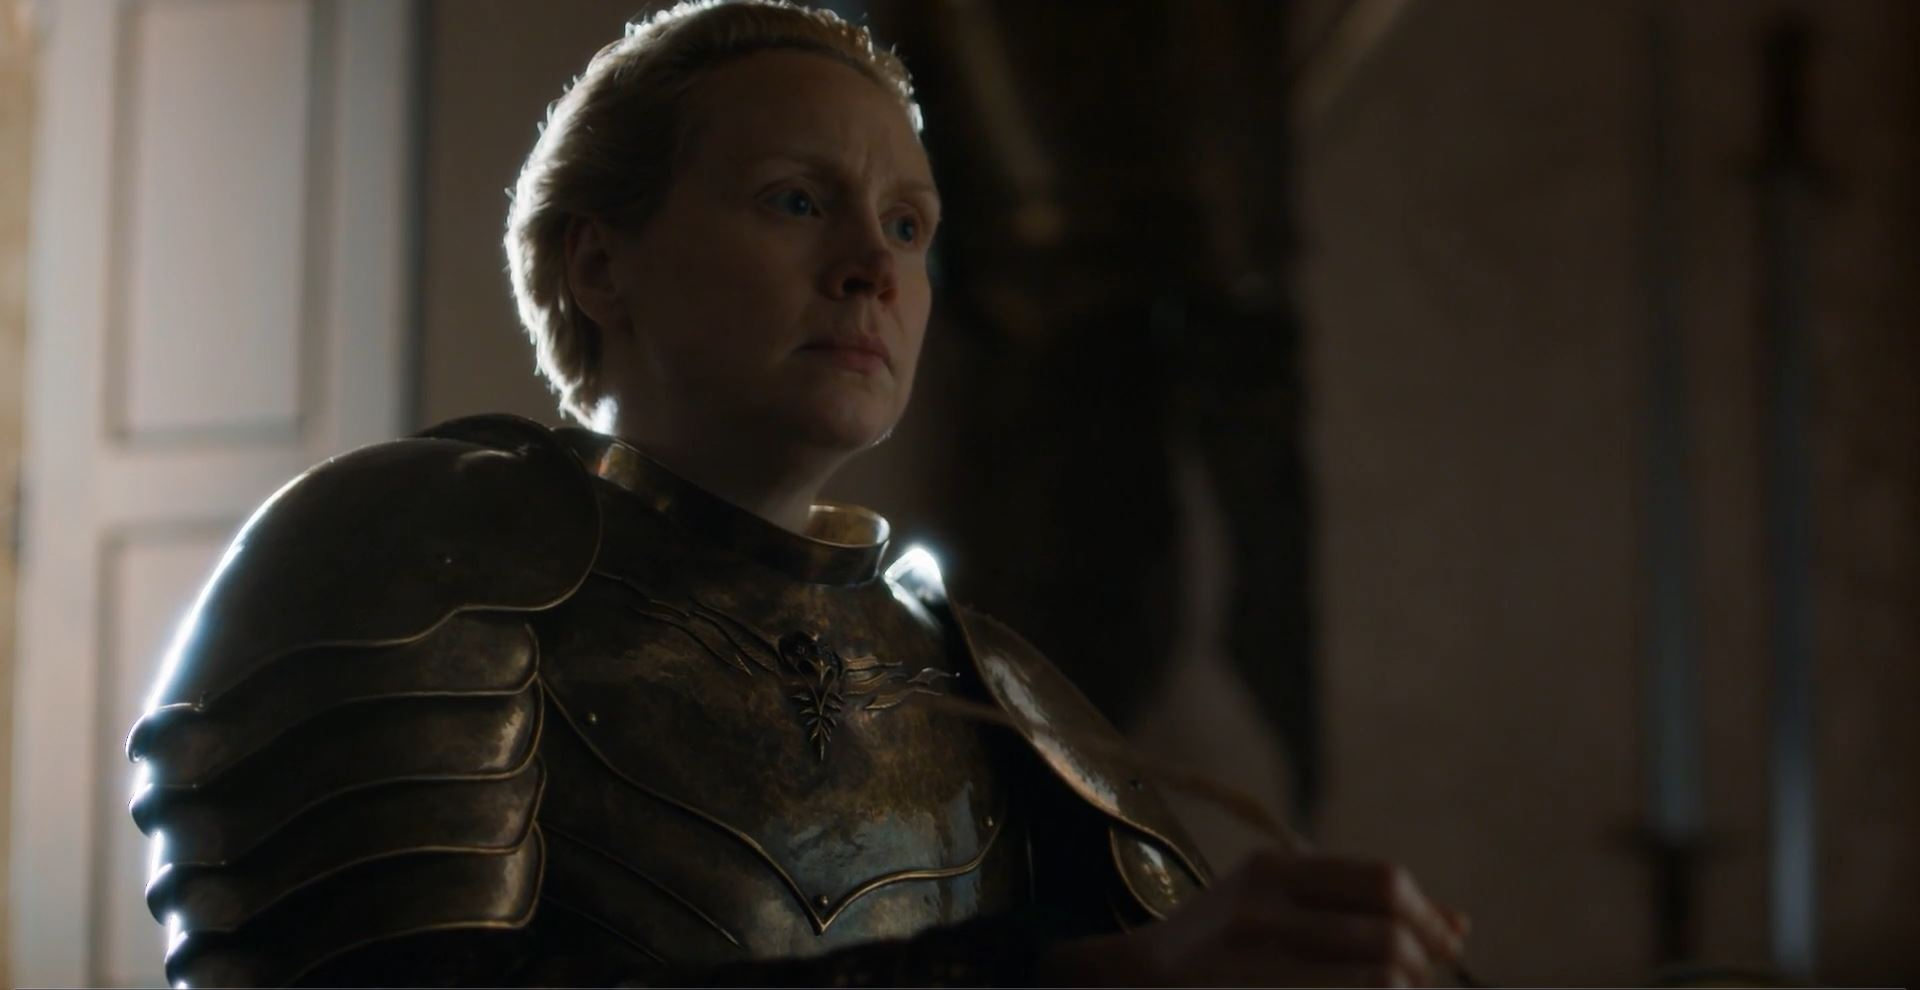 Game of Thrones S08E06 Review - Brienne fills Jaime's pages